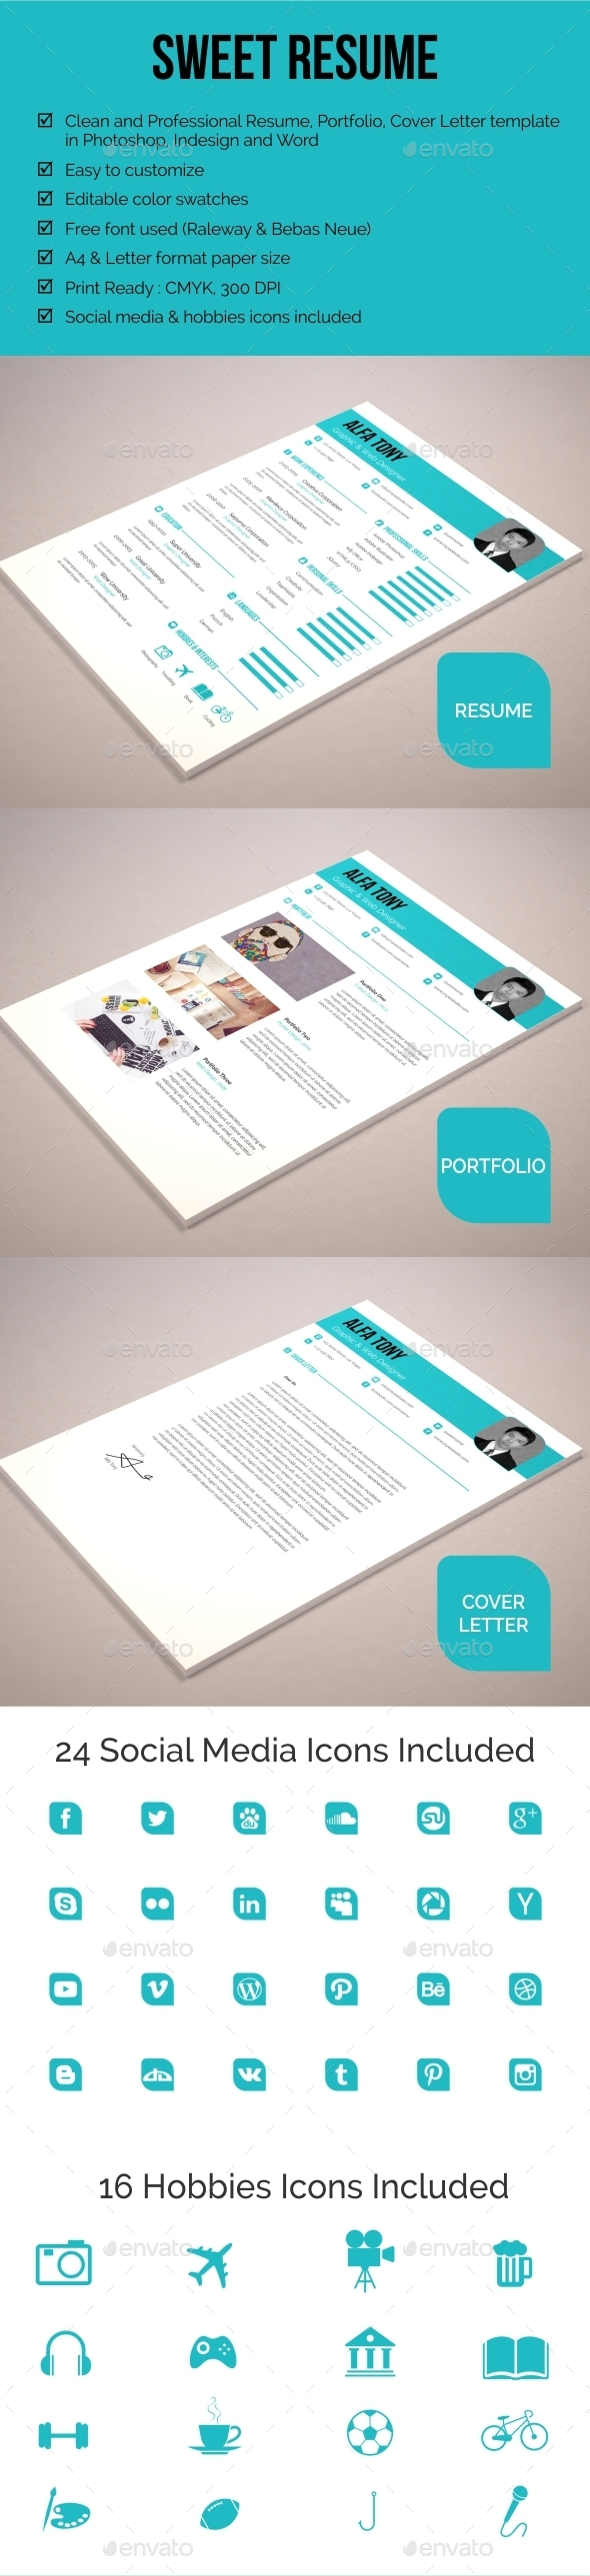 GraphicRiver Sweet Resume 11922759